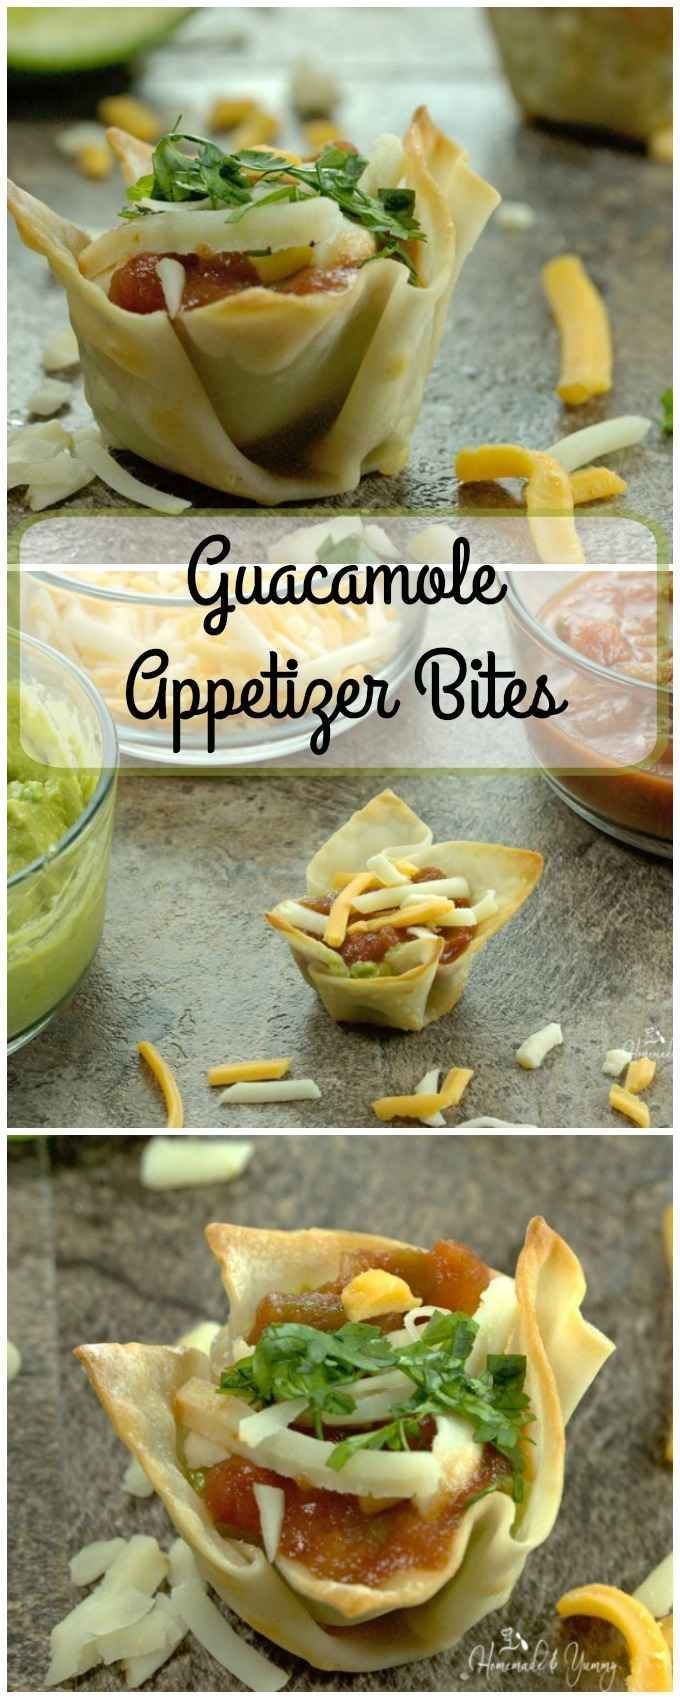 Guacamole Appetizer Bites are the perfect party food!! Guacamole, salsa and…